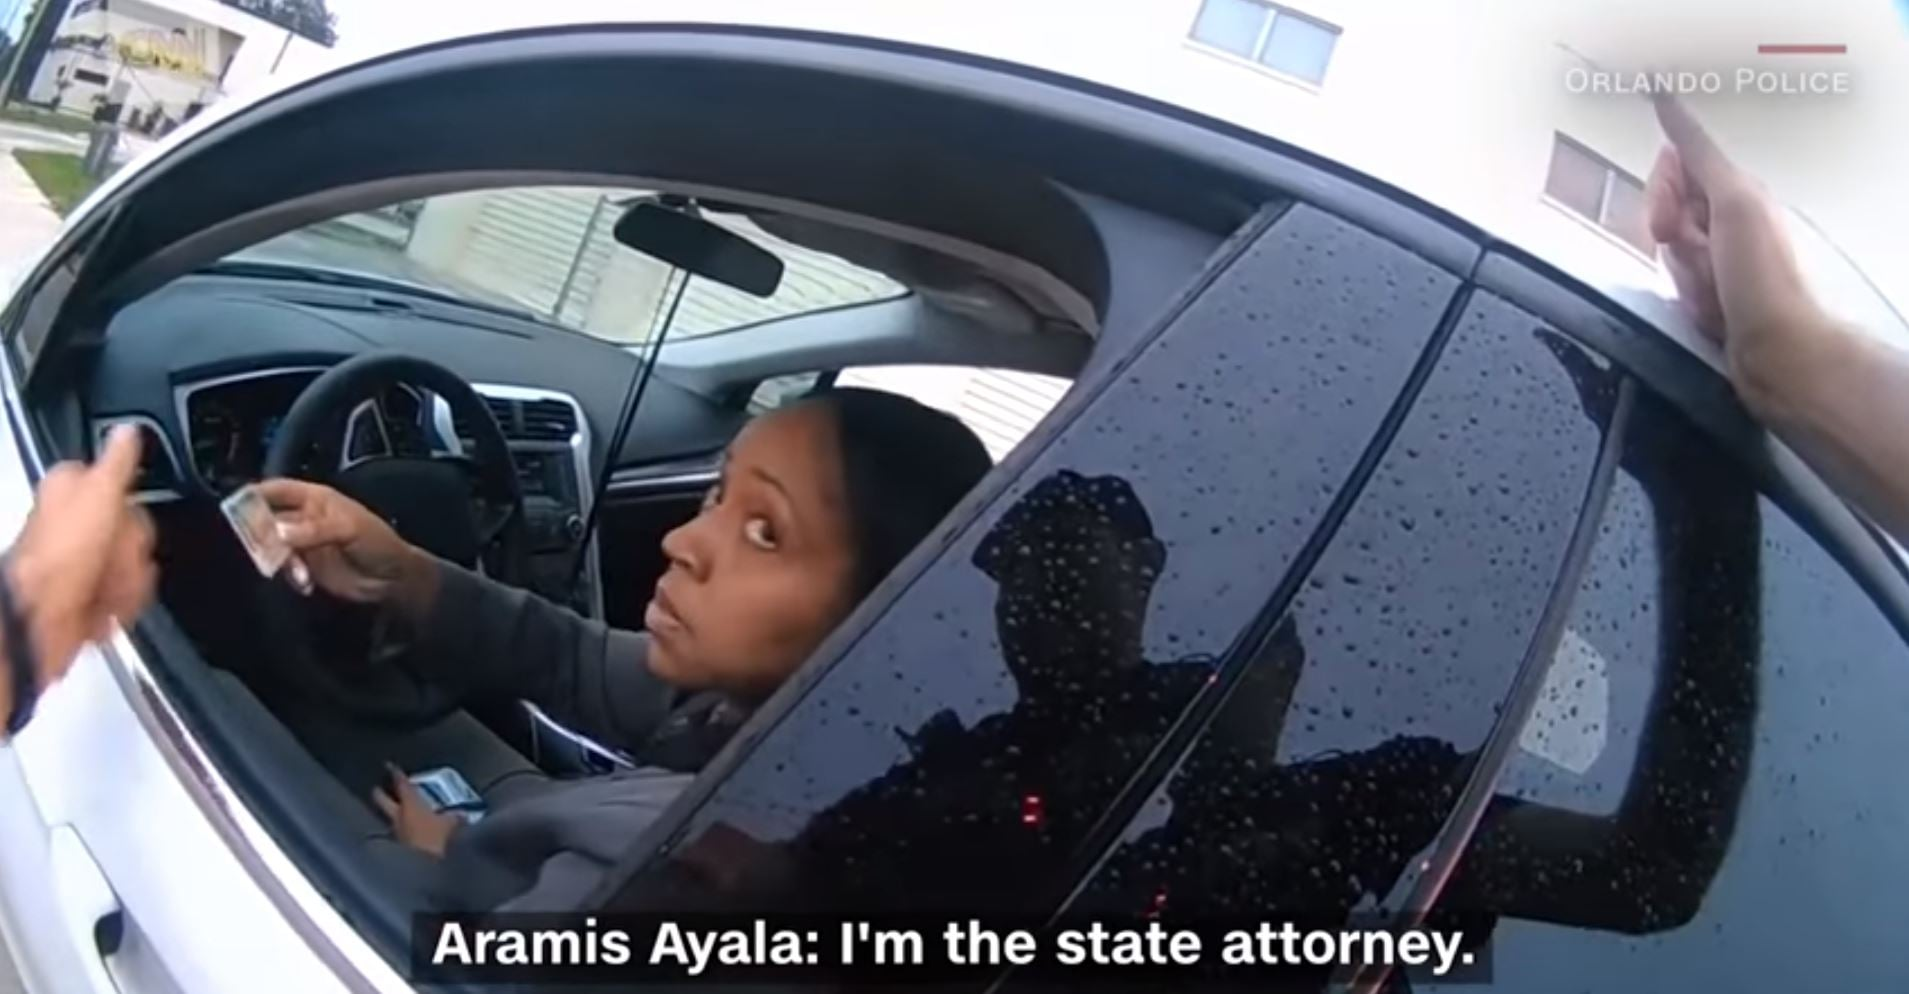 cops pull over state attorney aramis ayala popsugar australia news. Black Bedroom Furniture Sets. Home Design Ideas